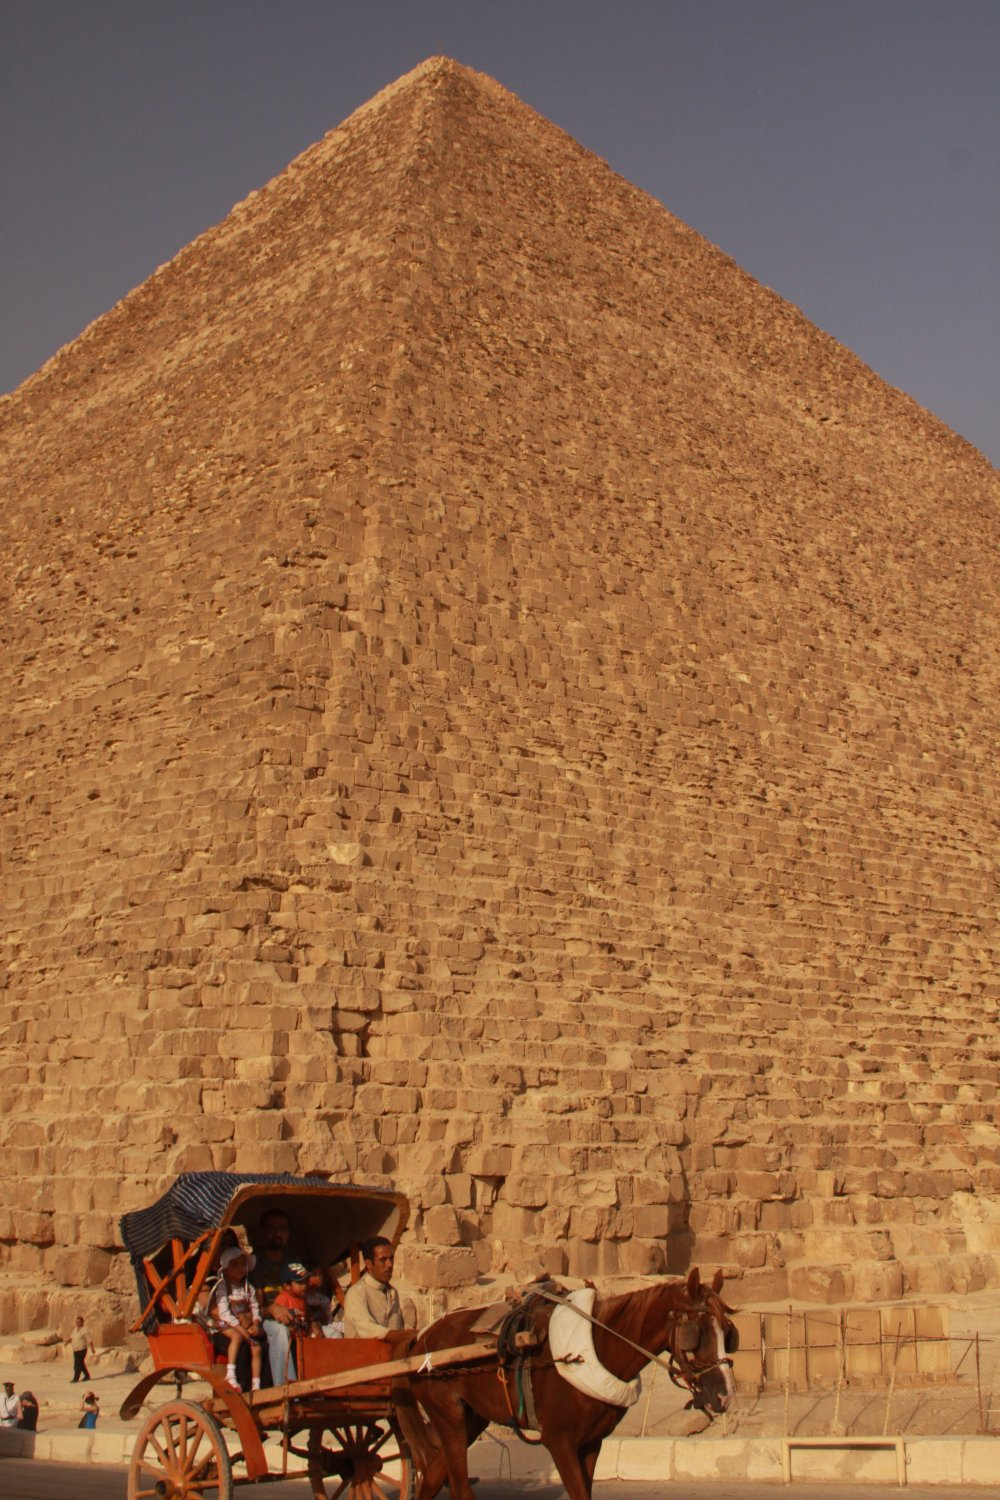 Grand Egyptian Pyramid, Giza Egypt